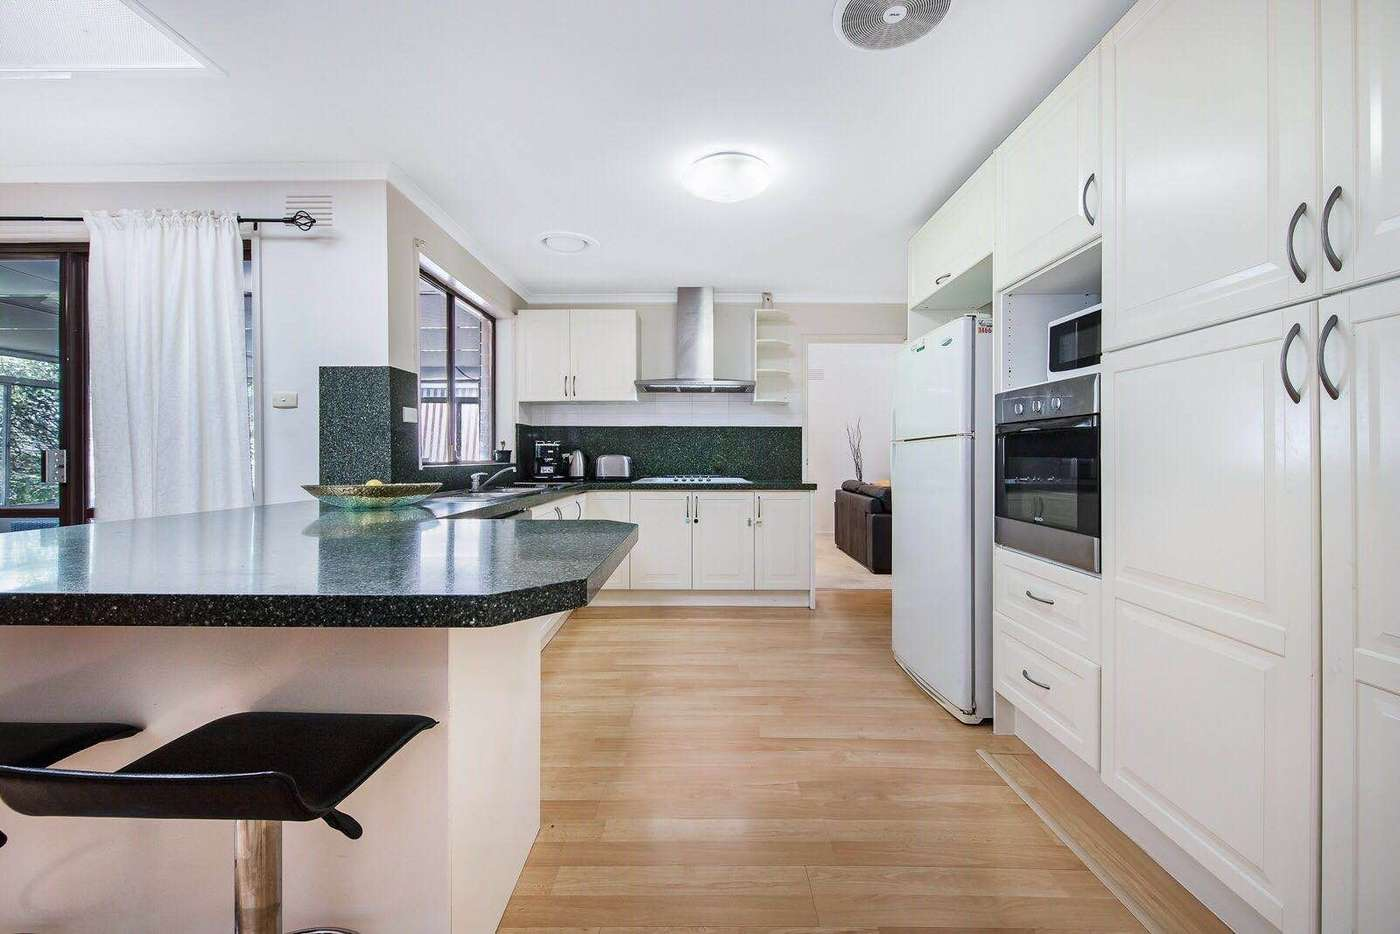 Fifth view of Homely house listing, 49 Barlyn Road, Mount Waverley VIC 3149